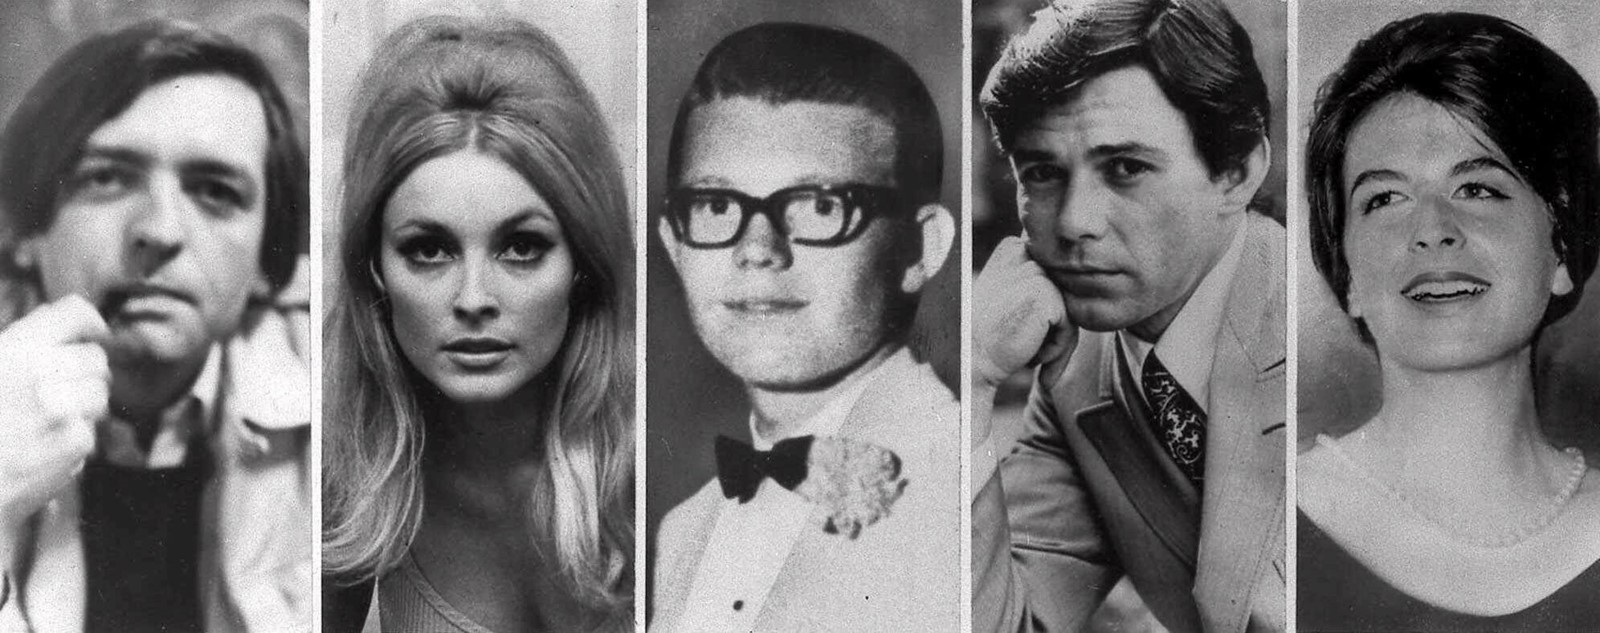 The victims of the Manson family's rampage in Benedict Canyon on August 9, 1969: Voytek Frykowski, left, Sharon Tate, Steven Parent, Jay Sebring and Abigail Folger. The next night, Leno and Rosemary LaBianca were slain in their Los Feliz home. — Photographs: Associated Press.